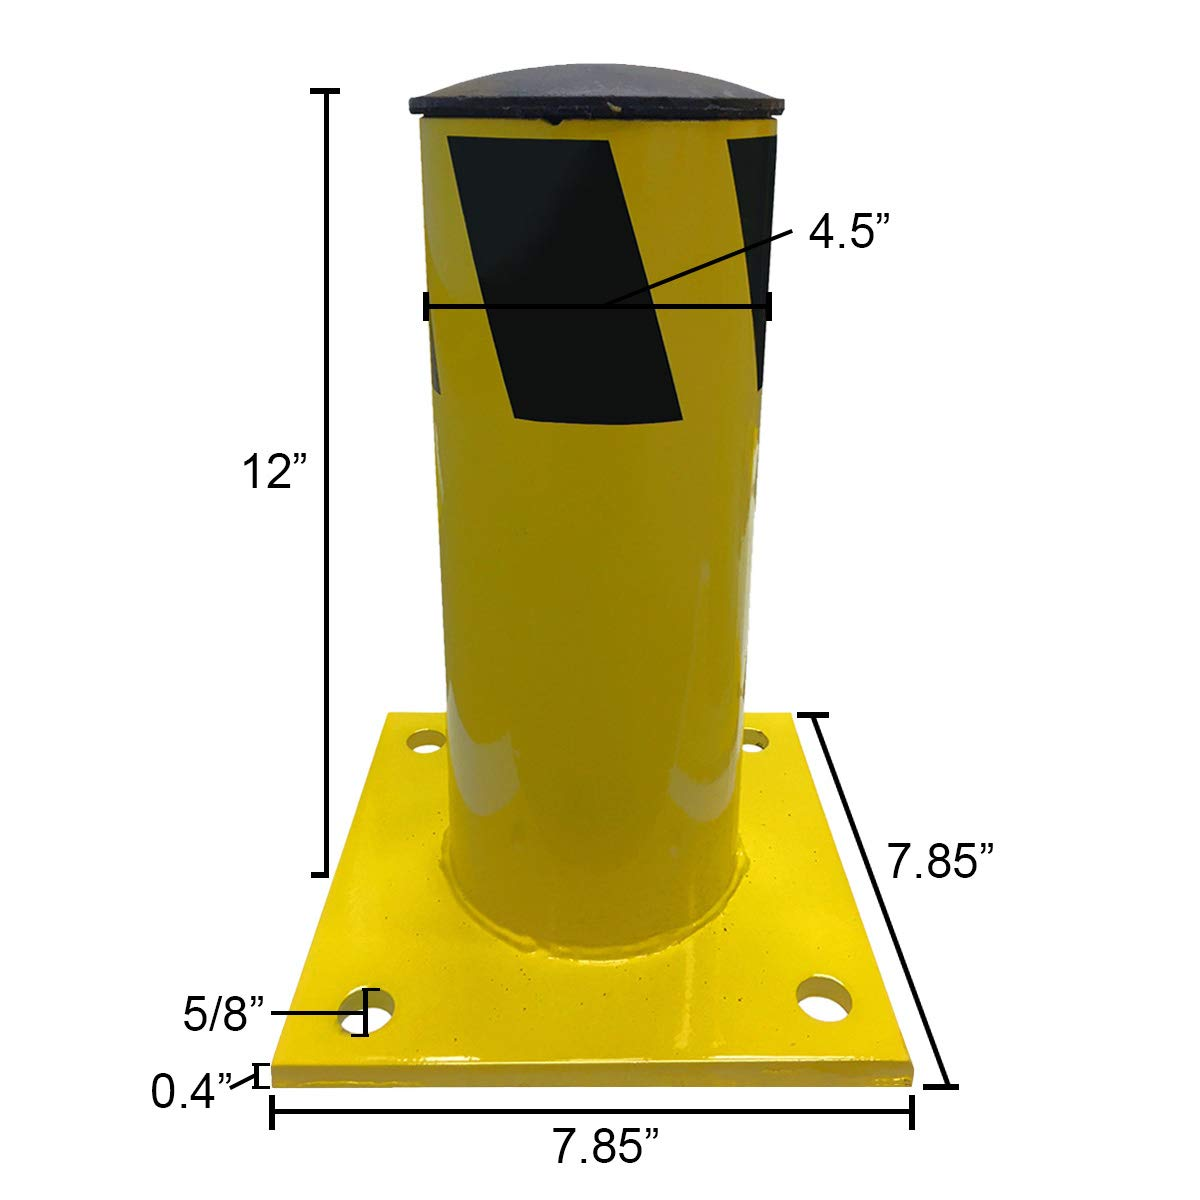 Electriduct 1 Foot Steel Pipe Safety Bollard Post Yellow/Black Stripe - Parking Lot Traffic Barrier (12'' Height - 4.5'' OD) - Pack of 4 by Electriduct (Image #3)